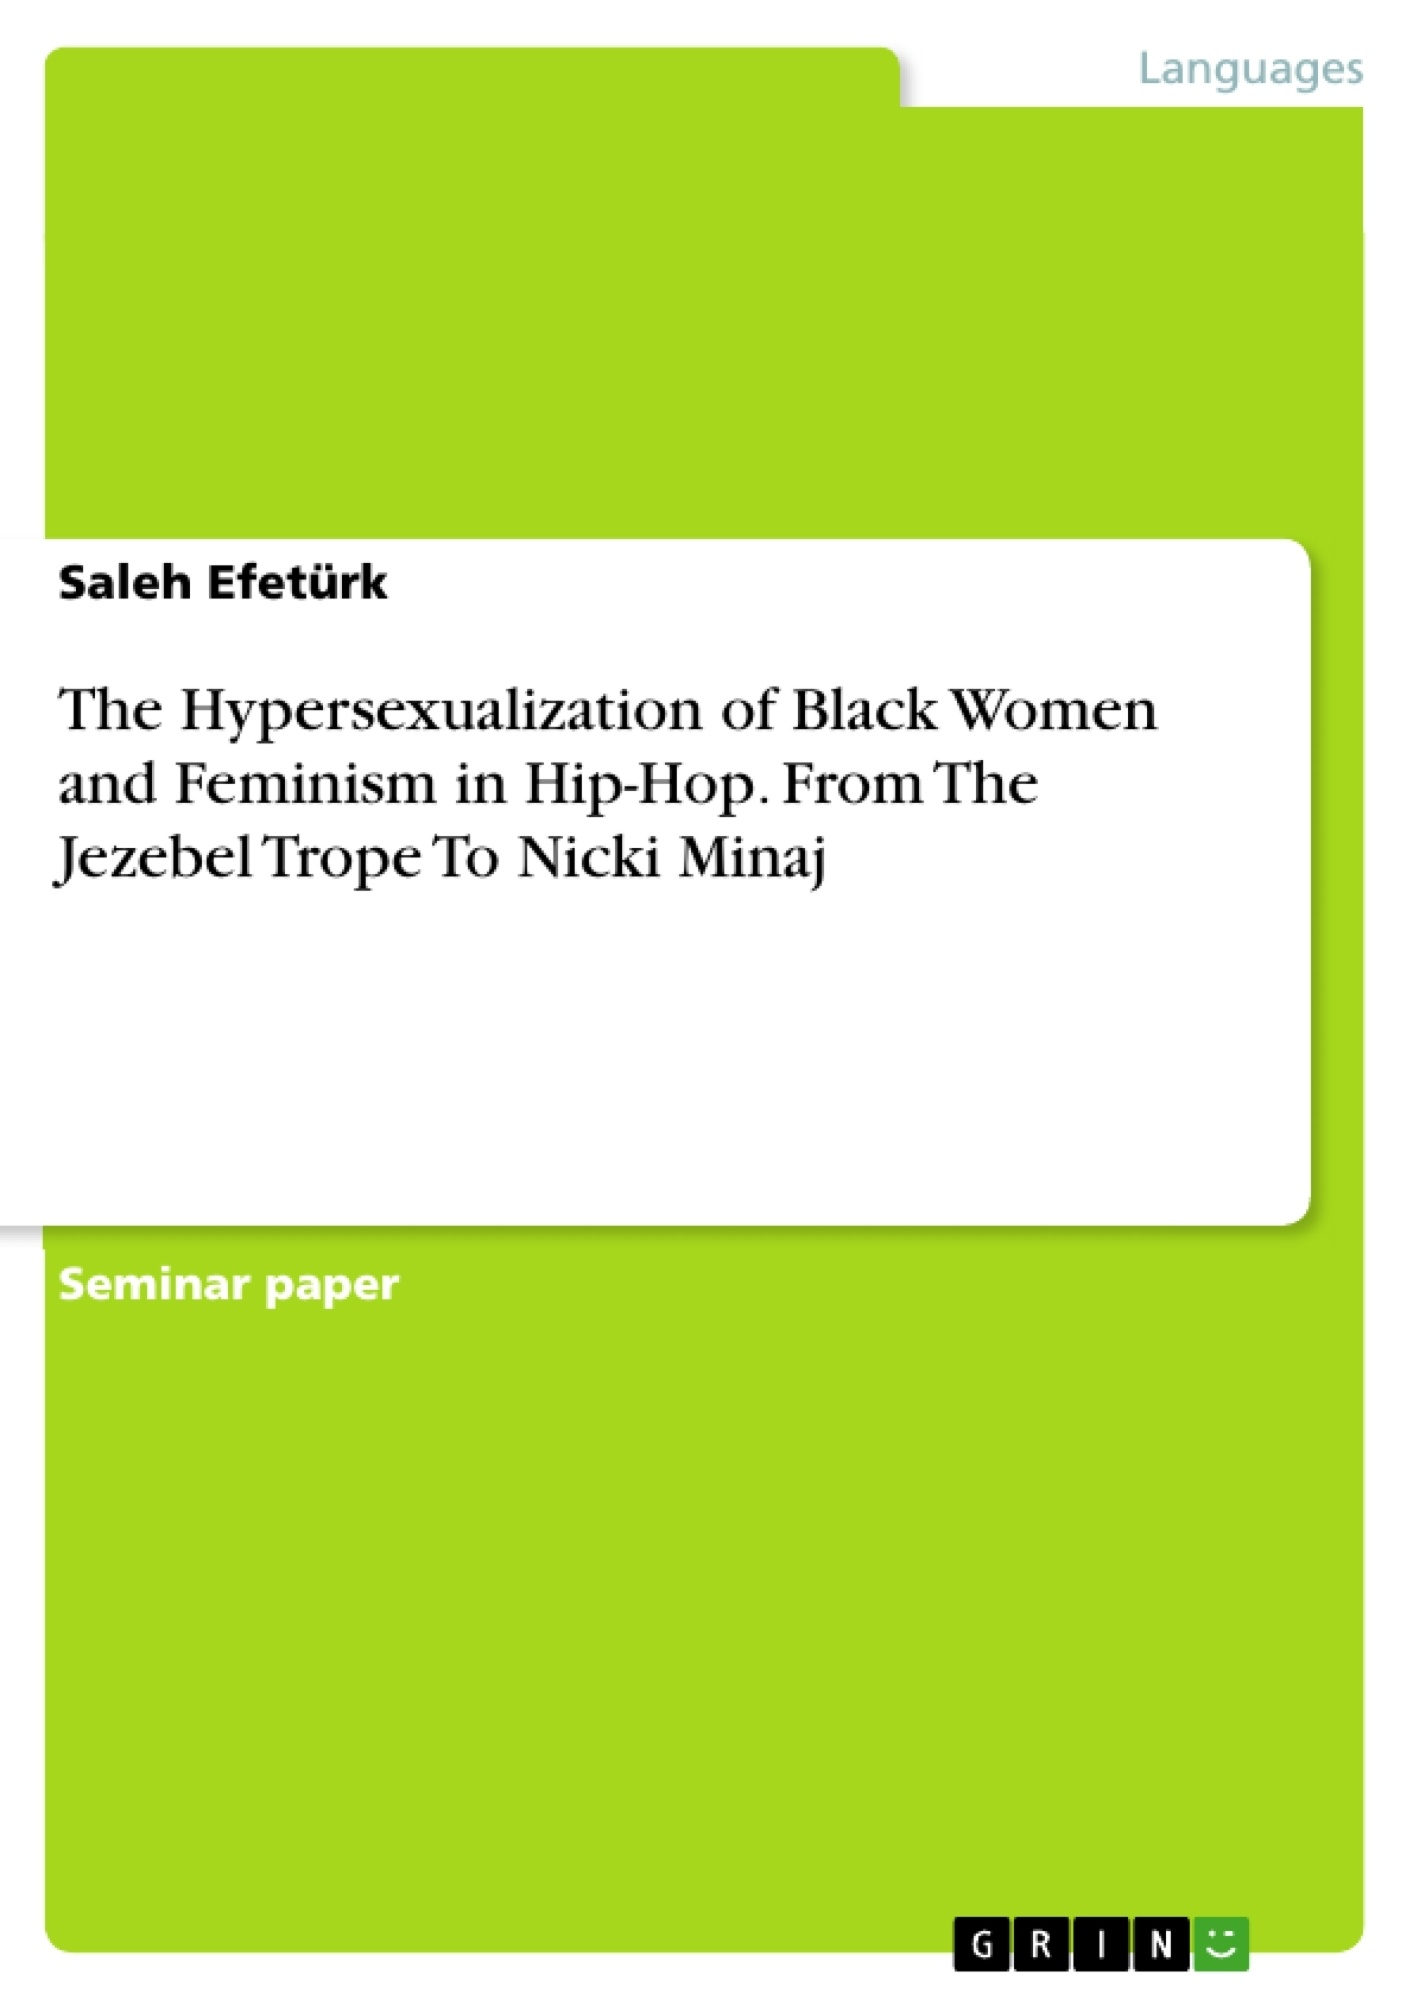 Title: The Hypersexualization of Black Women and Feminism in Hip-Hop. From The Jezebel Trope To Nicki Minaj